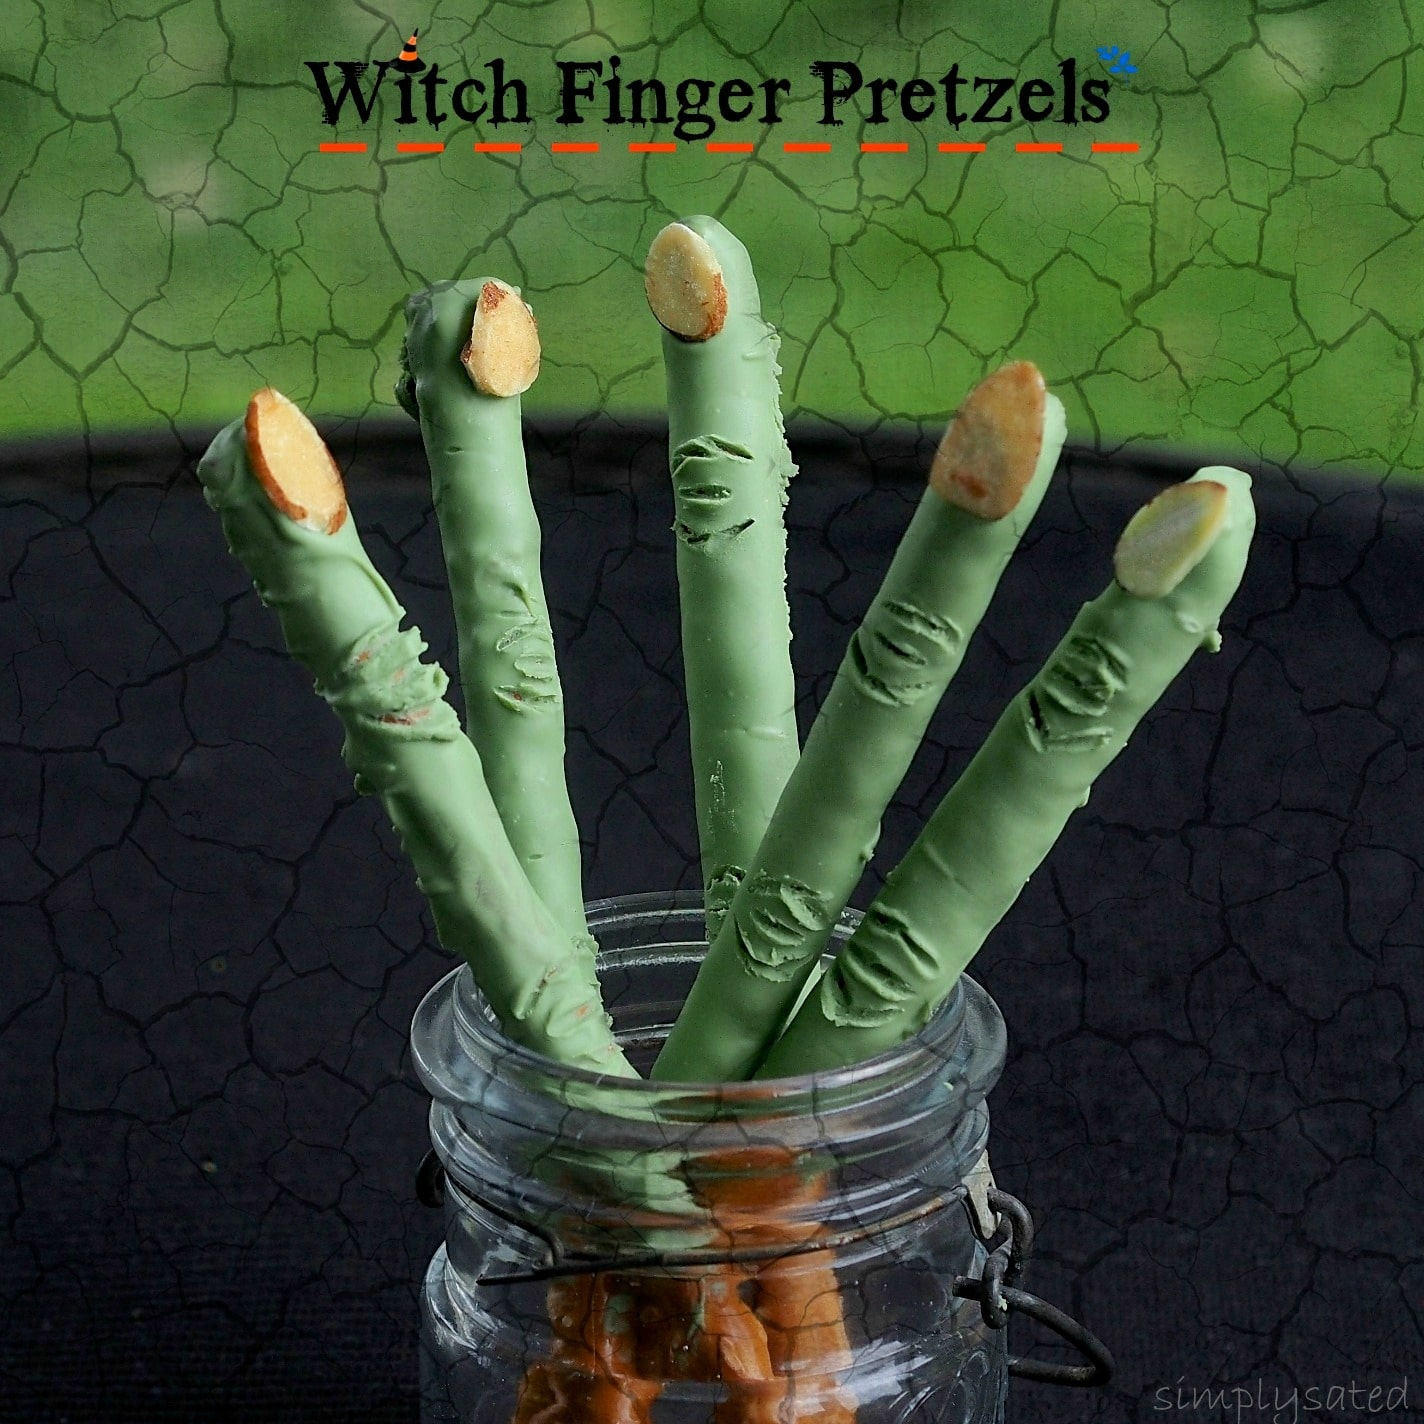 Witch Finger Pretzels - Simply Sated